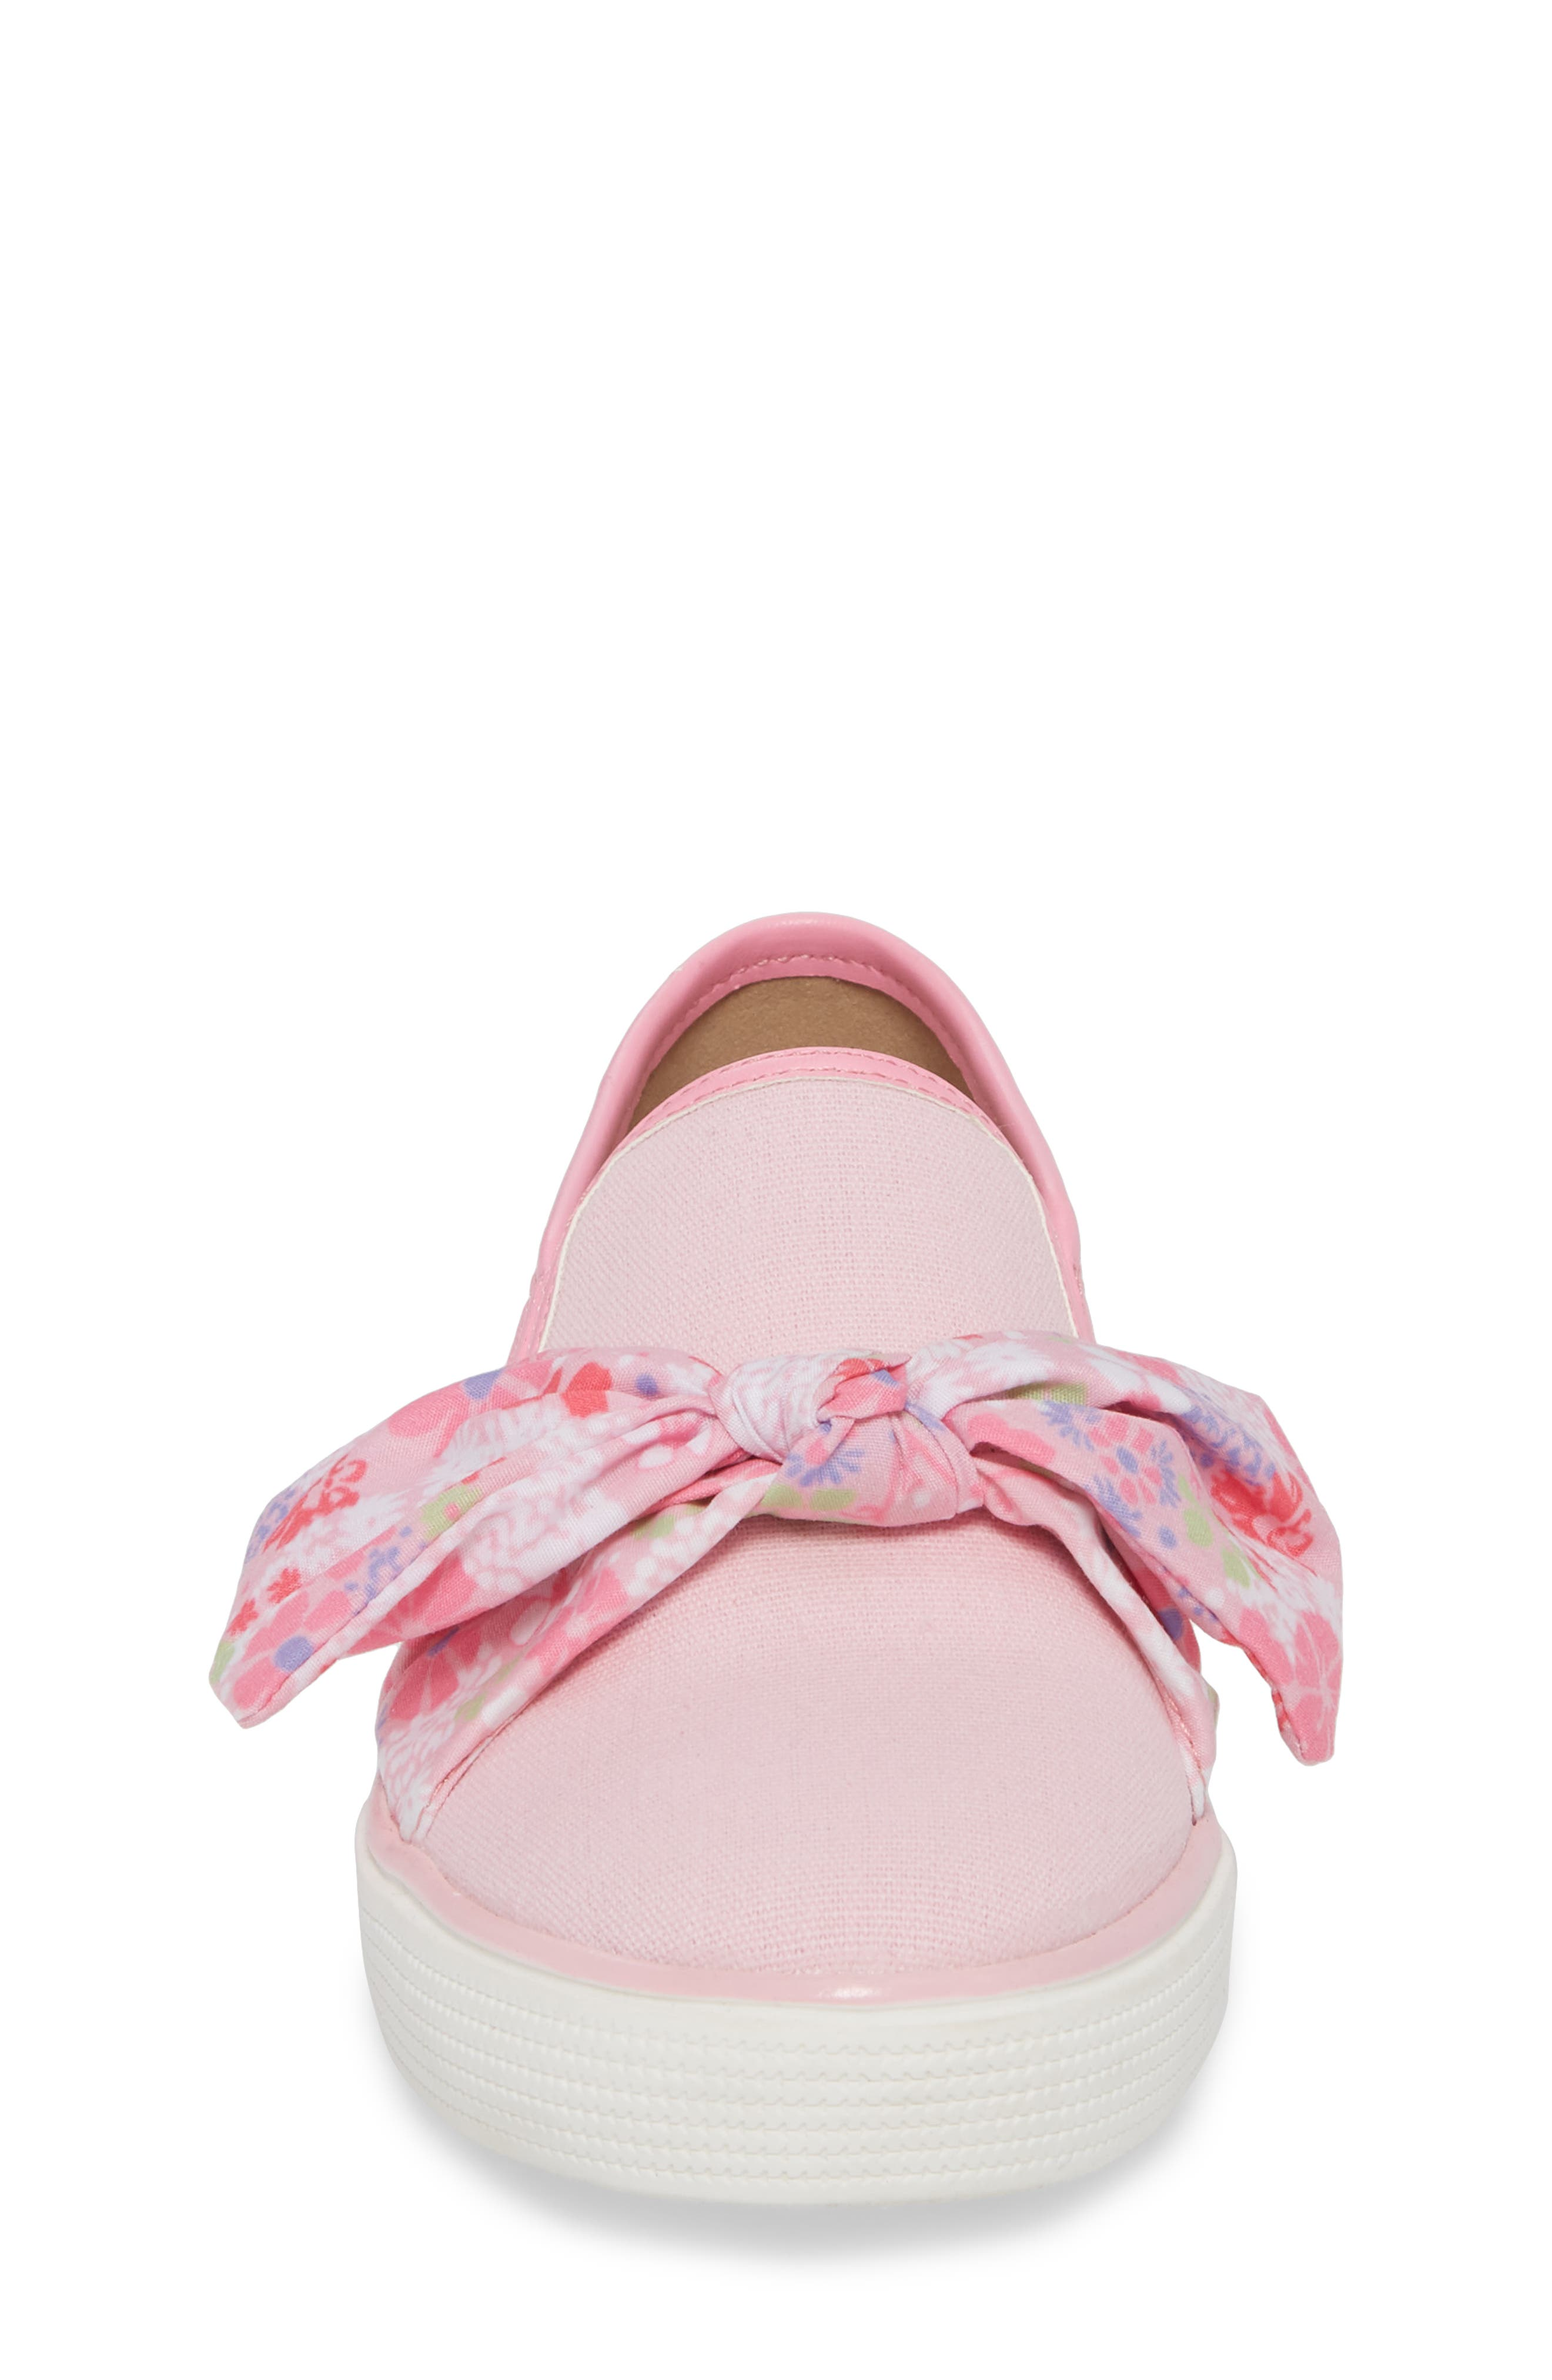 Ashlyn Bow Slip-On Sneaker,                             Alternate thumbnail 6, color,                             Orchid Pink